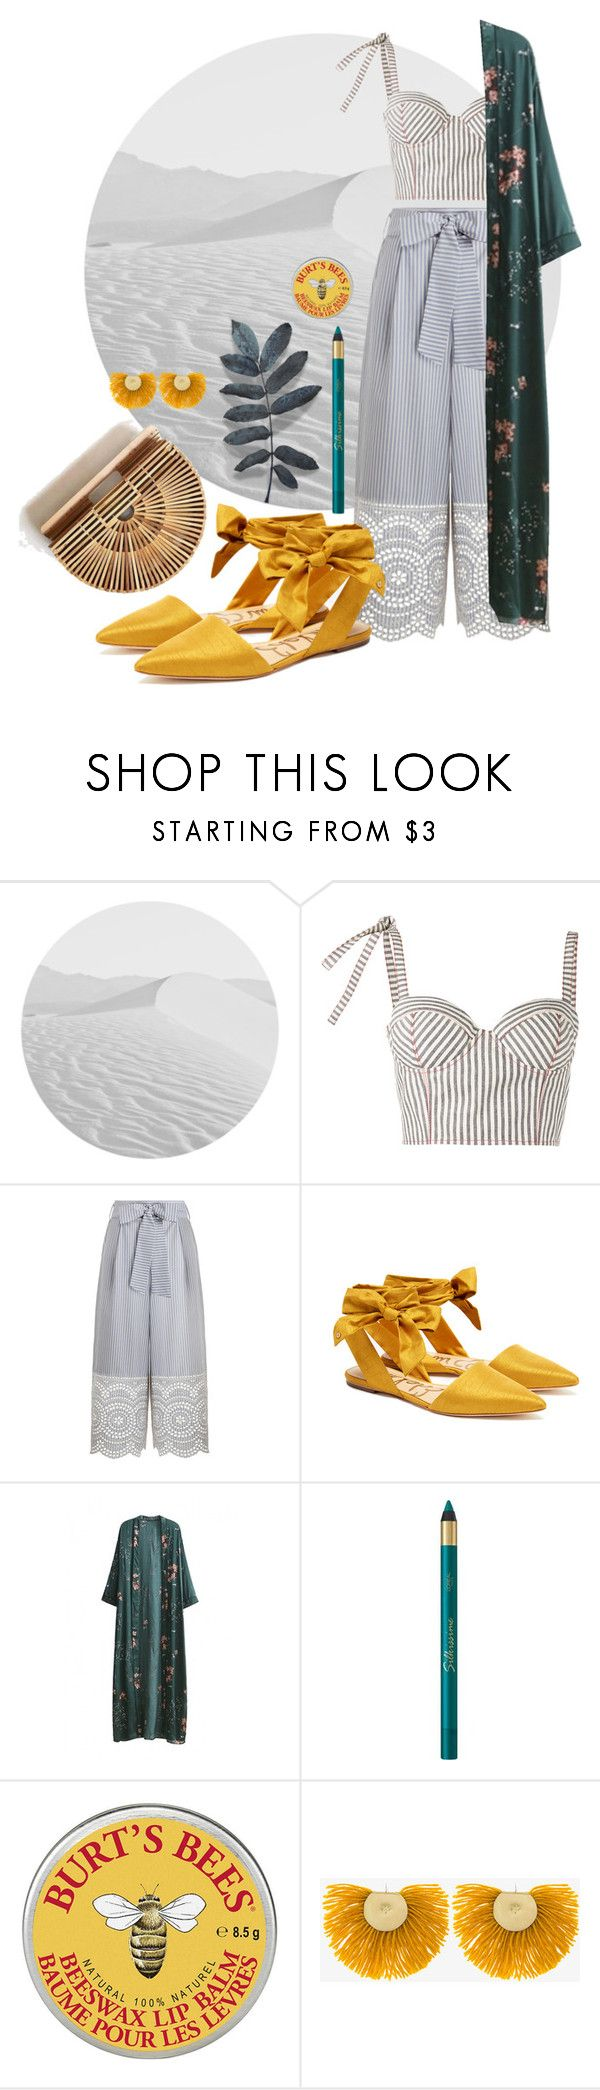 """summer nights"" by nover on Polyvore featuring Rosie Assoulin, Zimmermann, Sam Edelman, WithChic, L'Oréal Paris and Katerina Makriyianni"